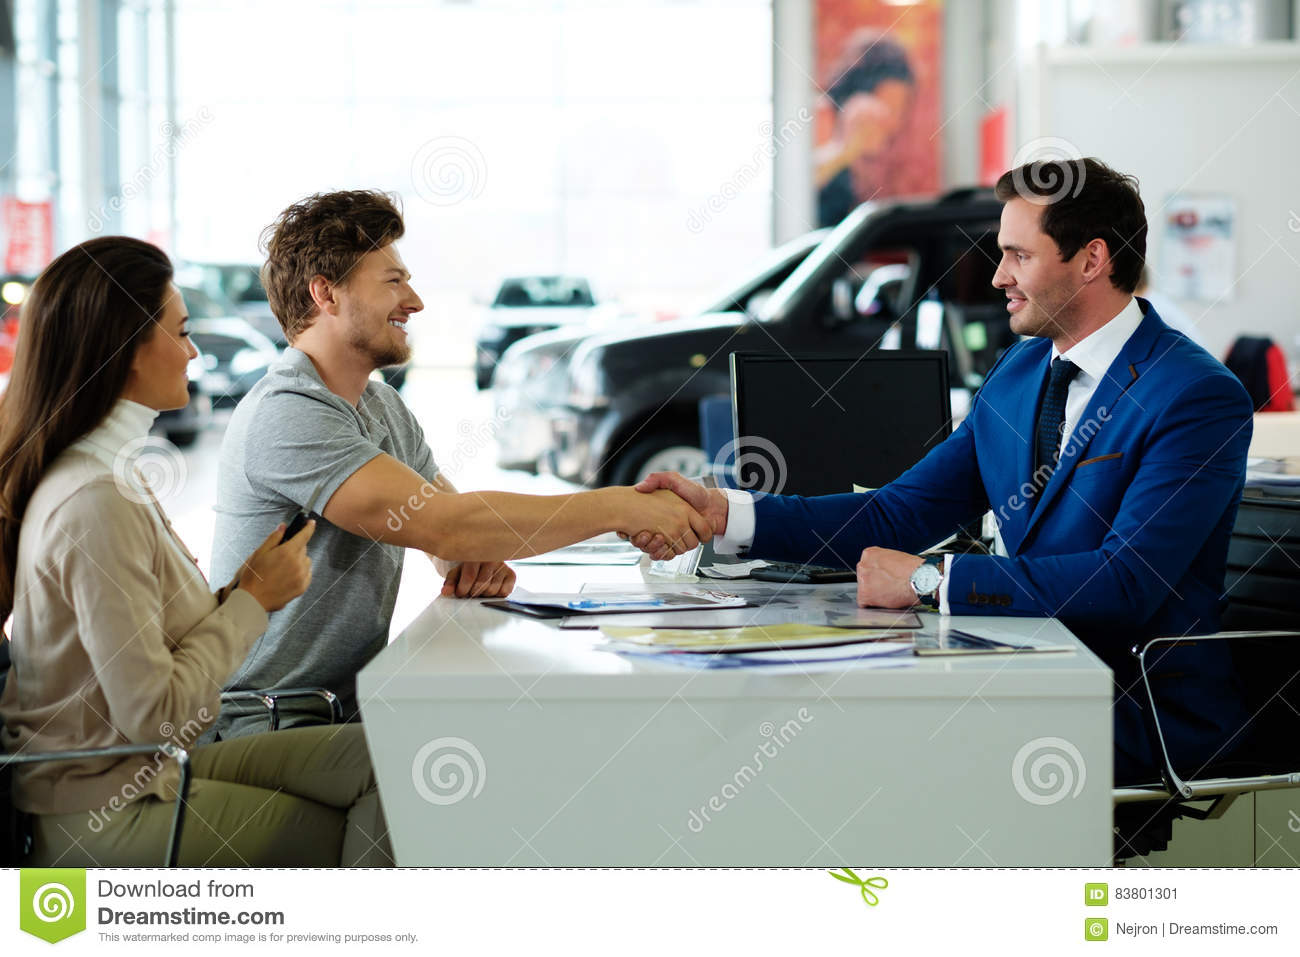 Salesman and customer shaking hands congratulating each other at the dealership showroom